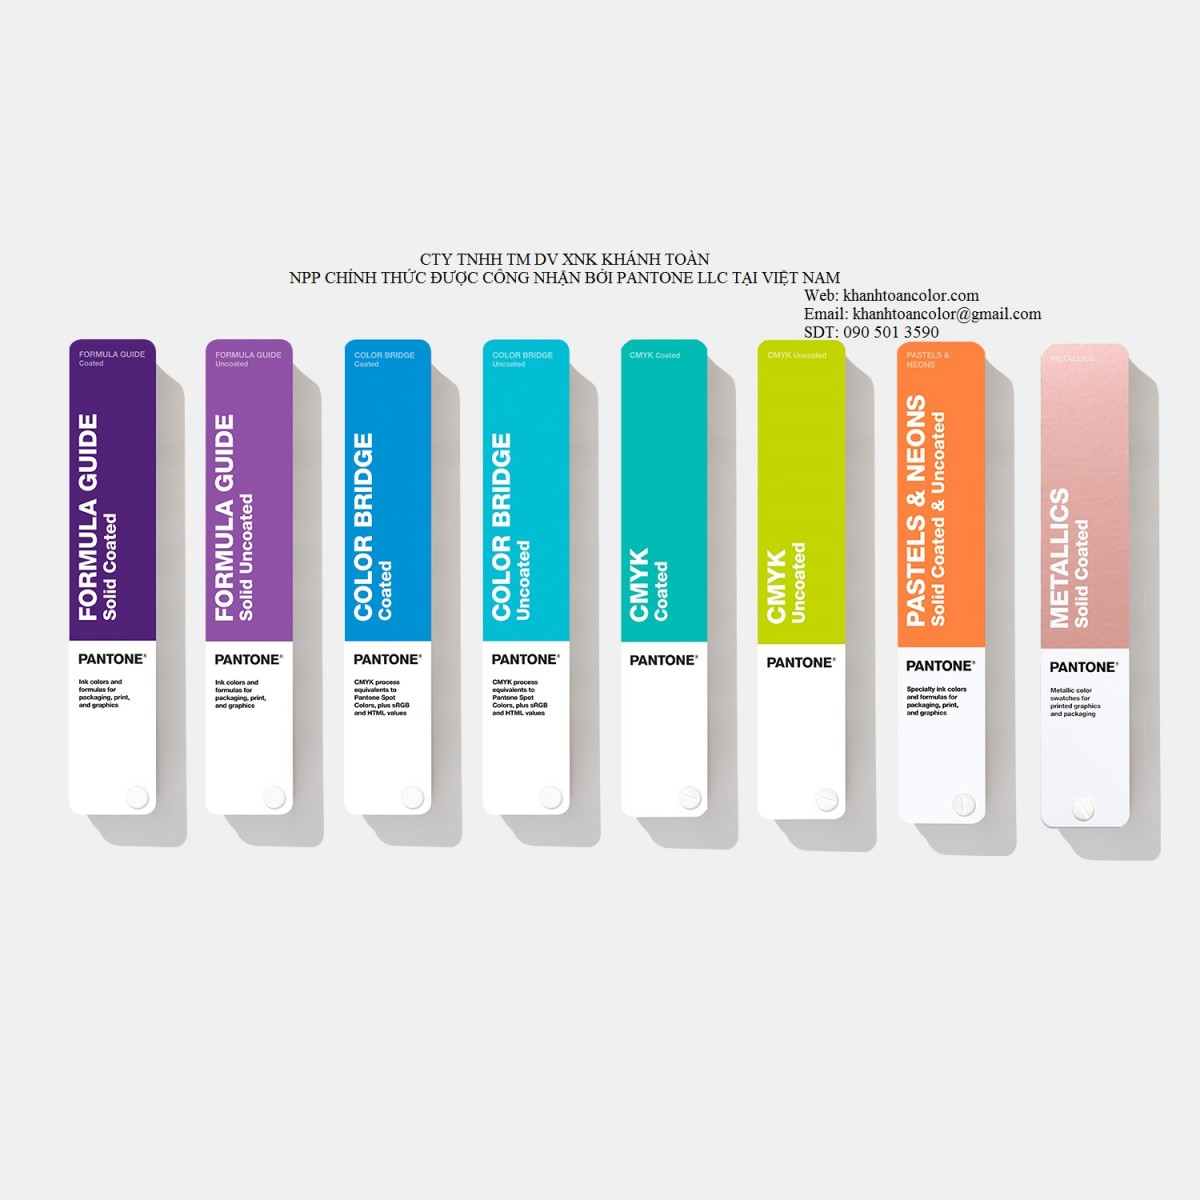 khanhtoancolor.com - Pantone Portable Guide Studio Set GPG304A (2019)(3)